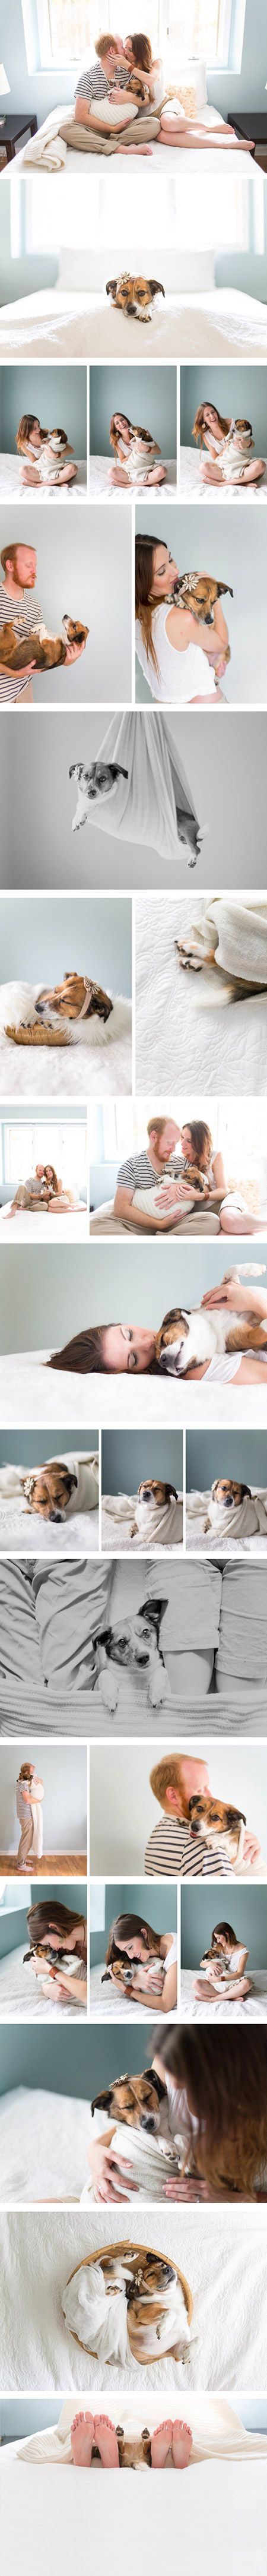 Putting a unique and furry spin on family photos, Huntsville, Alabama-based photographer Jamie Clauss shot a series of humorous and adorable images of her wedding photographer friends Jan and Chase Renegar and their dog in the same style as traditional newborn photography. One day, after admiring a photo shoot that Clauss had done with the family of a newborn baby, Jan remarked that she wished that she could have her own shoot. While she didn't have a baby, she and her husband did have ...